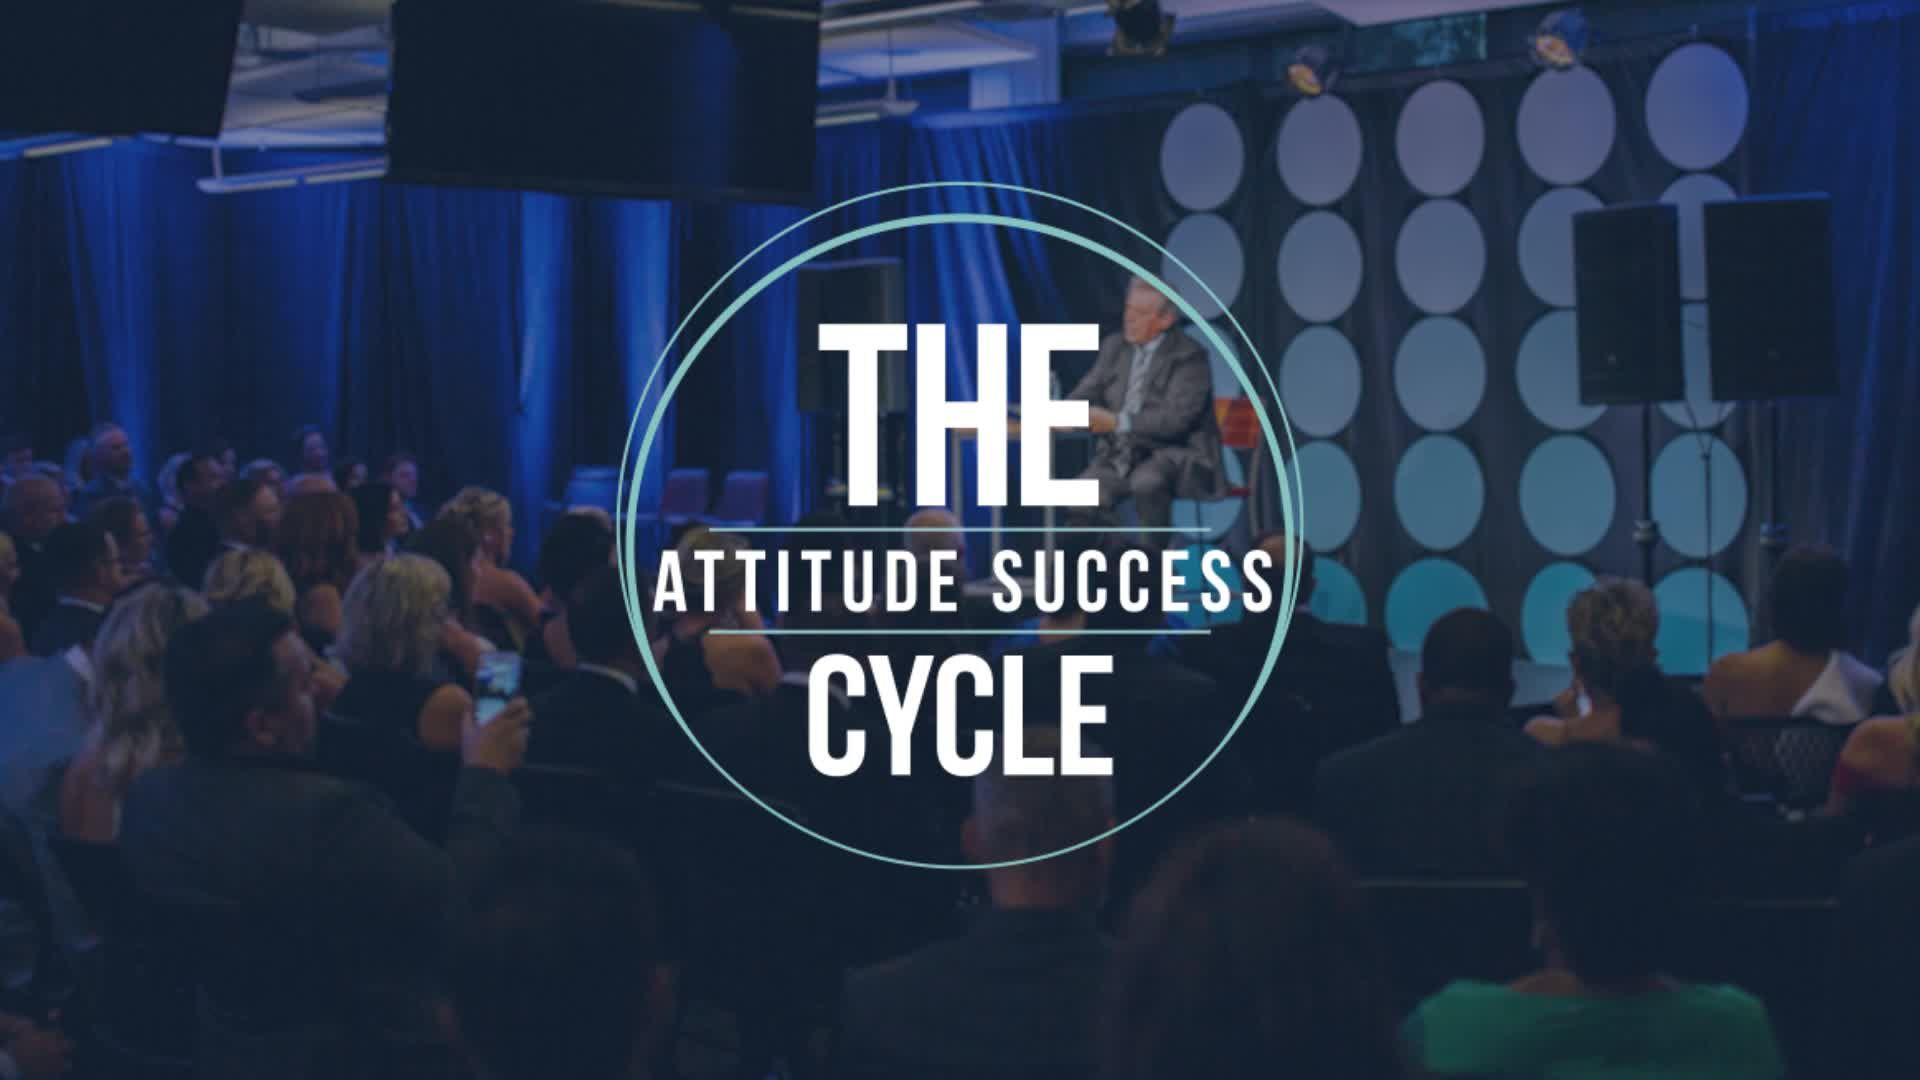 The Attitude Success Cycle